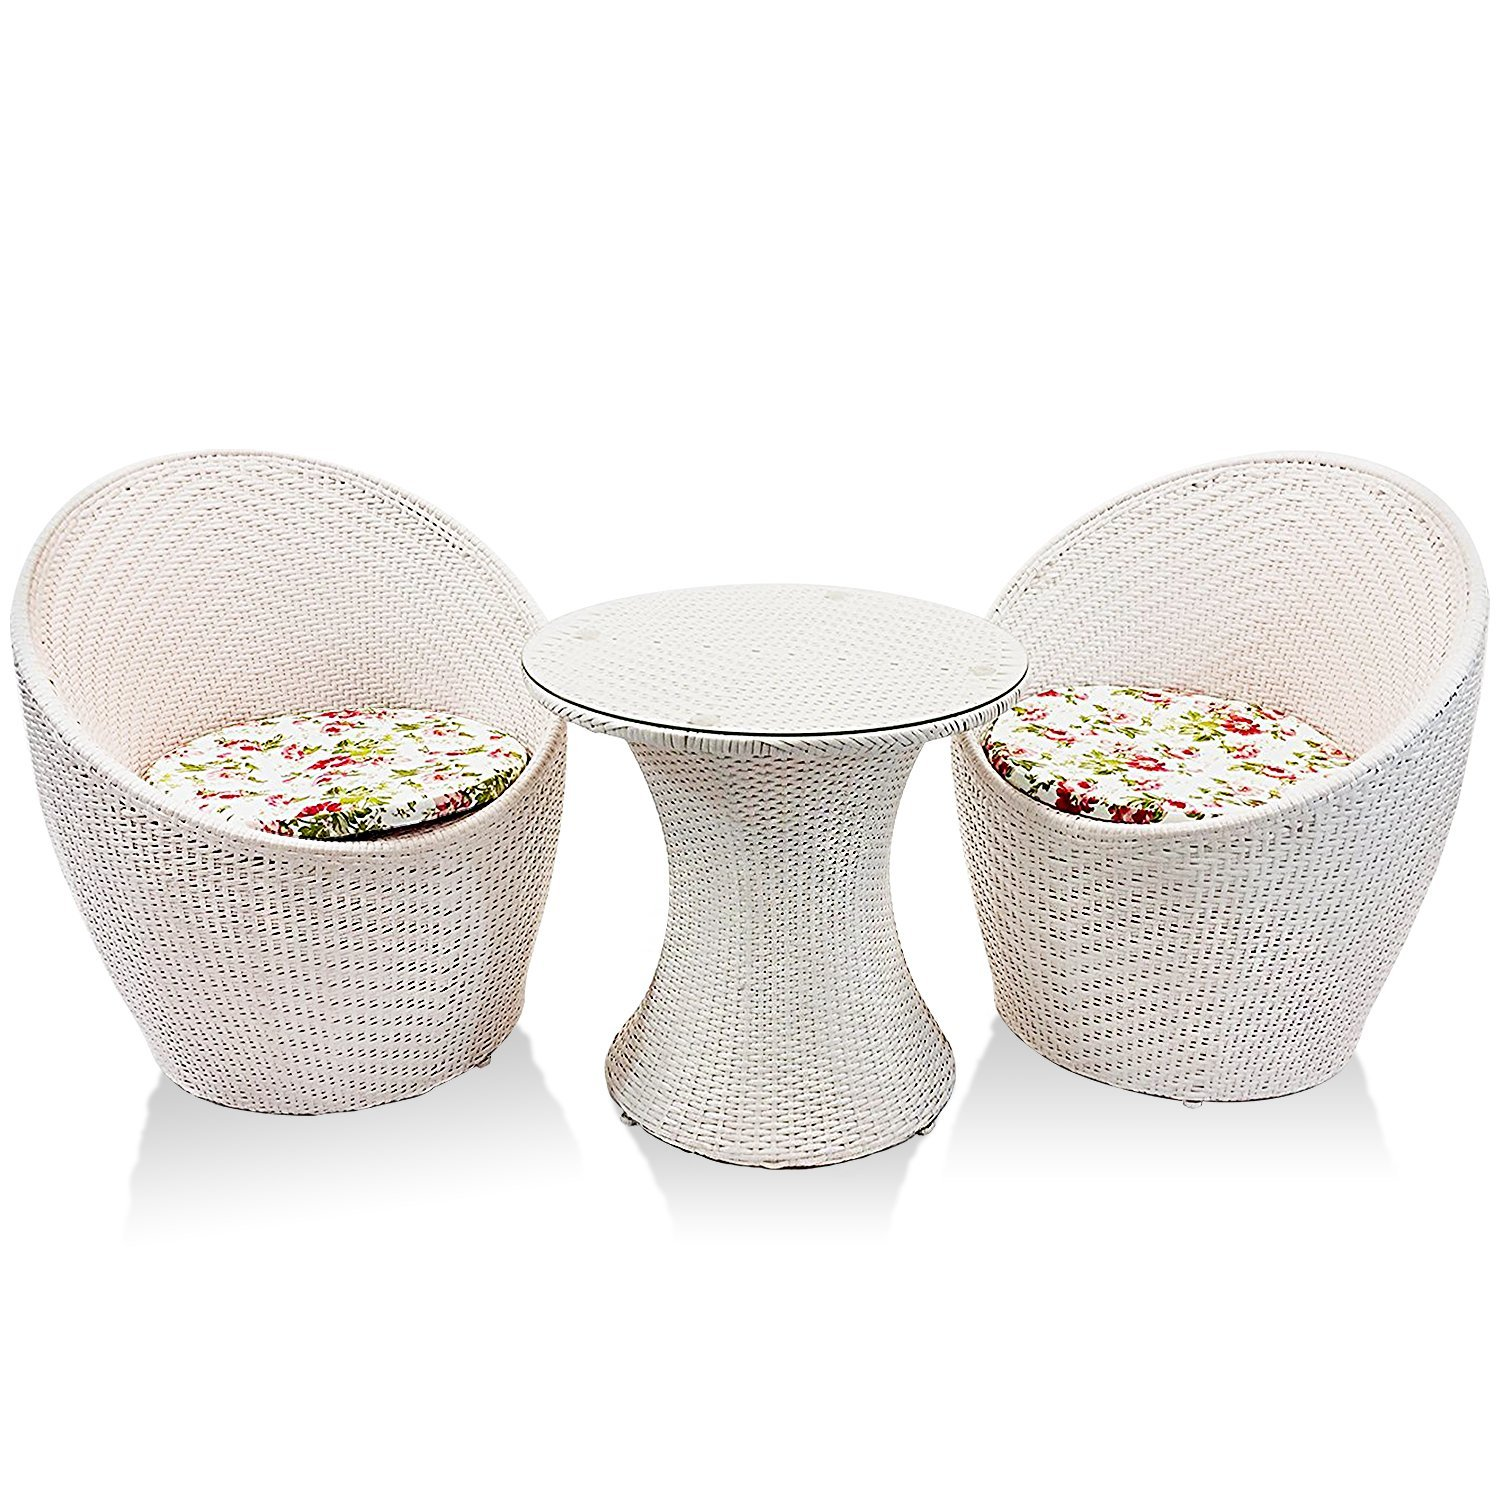 2 chairs and table rattan target dining gray dl furniture 1 combination round circle lounge chair plastic